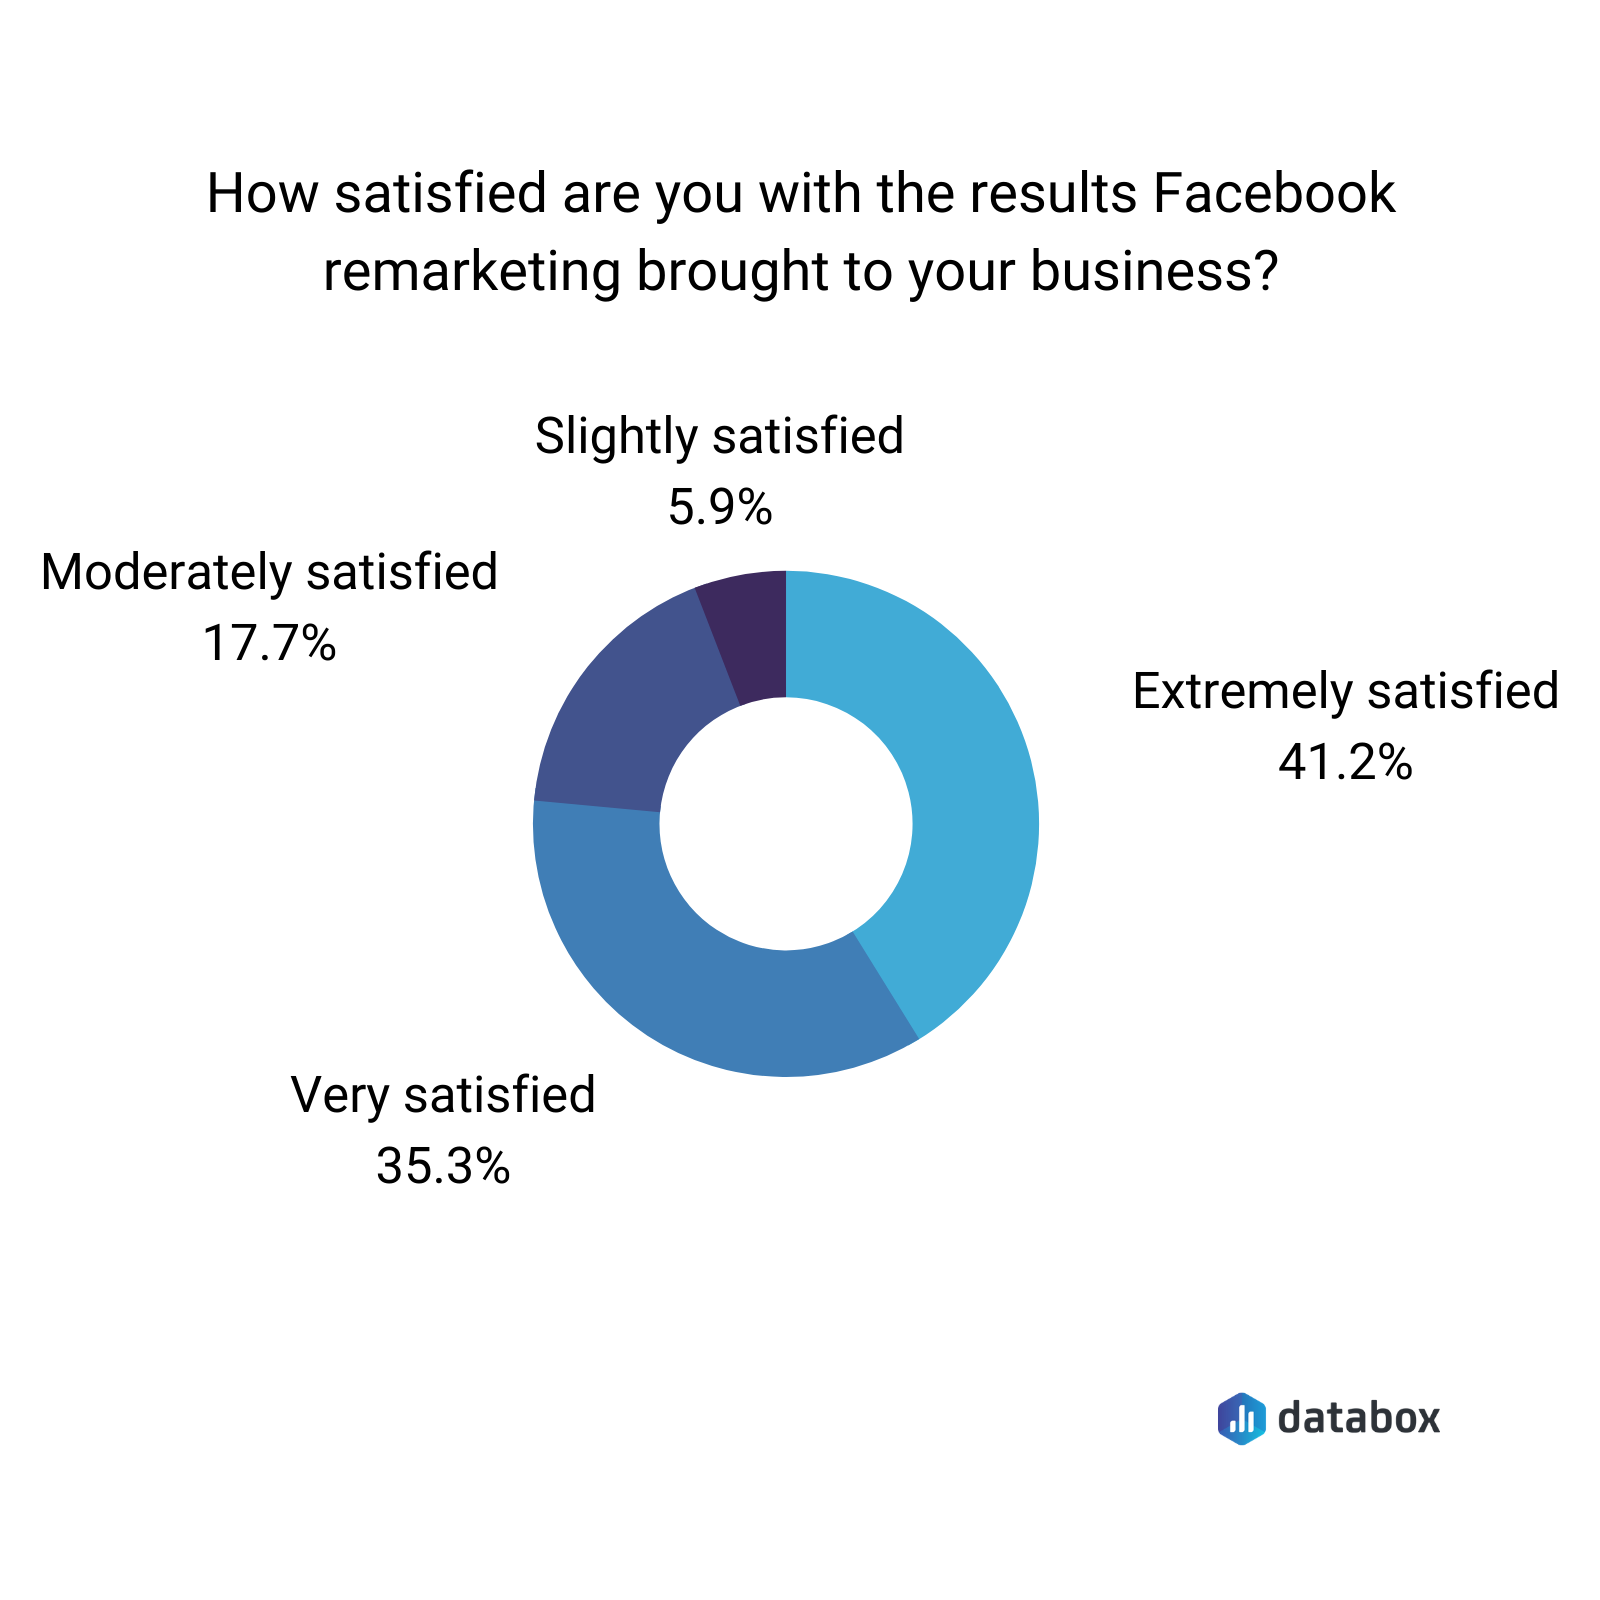 Facebook remarketing results level of satisfaction data graph